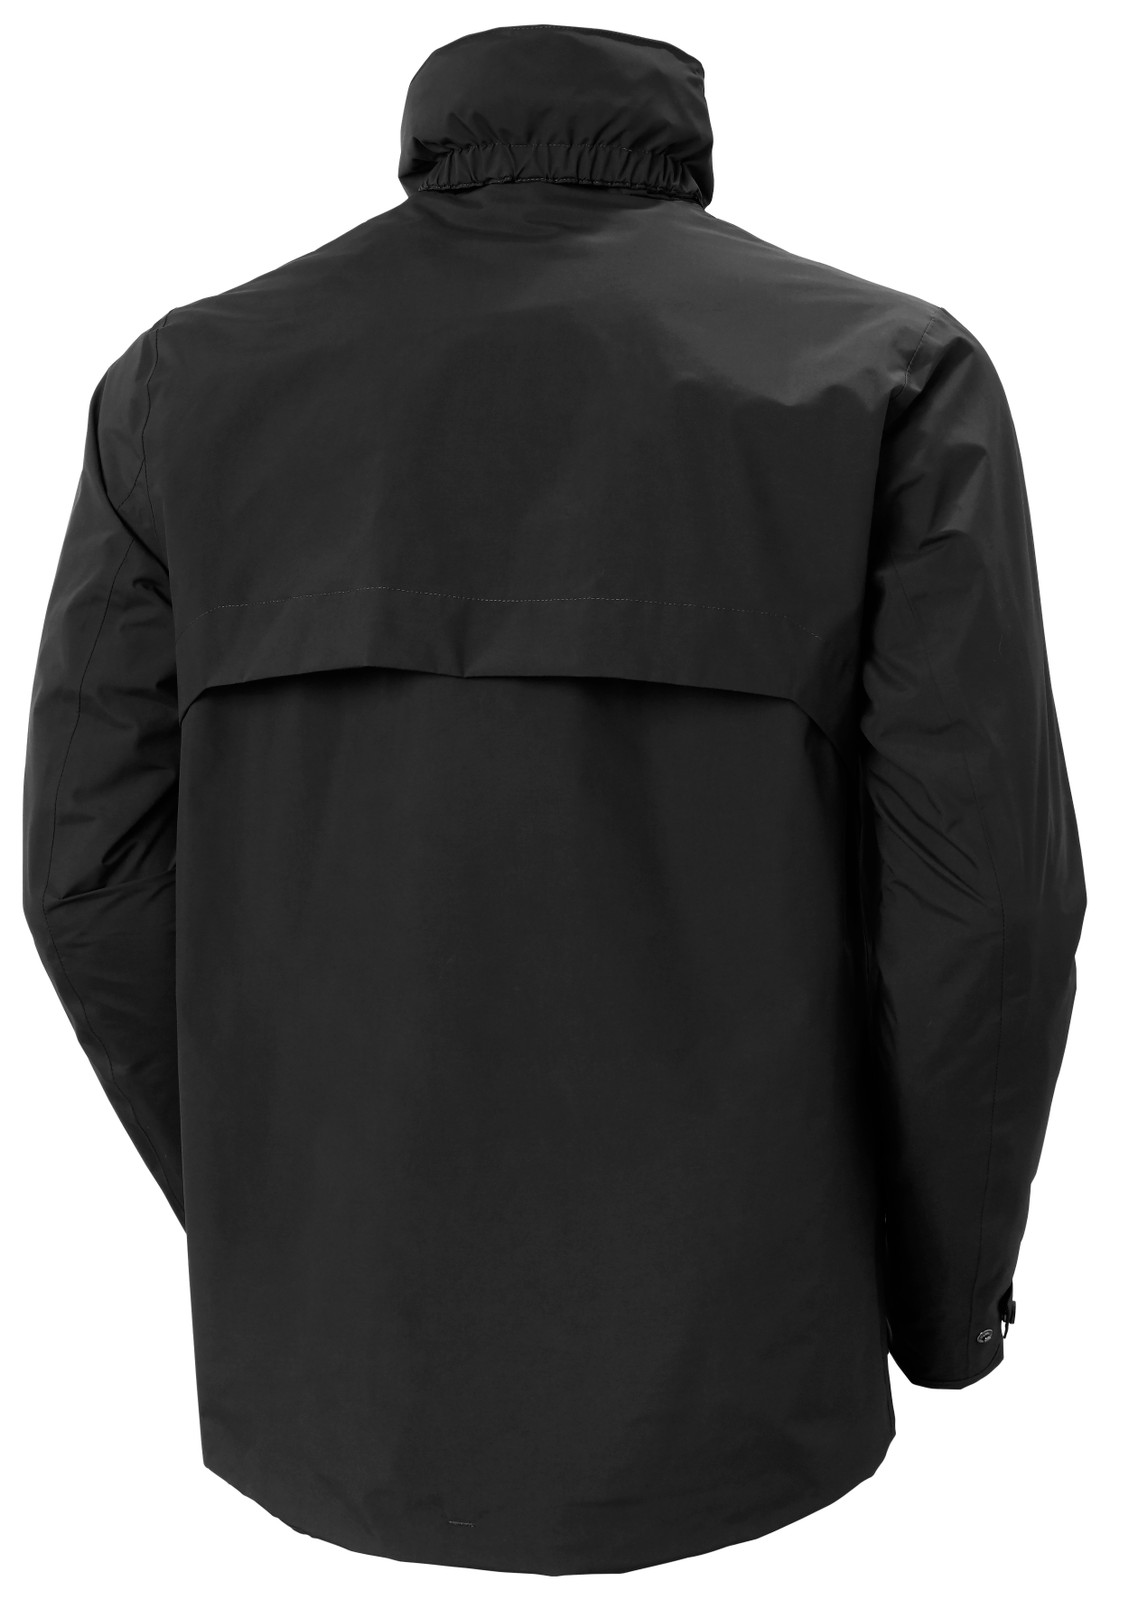 Helly Hansen Utility Rain Jacket, Men's - Black, 53415-990 back